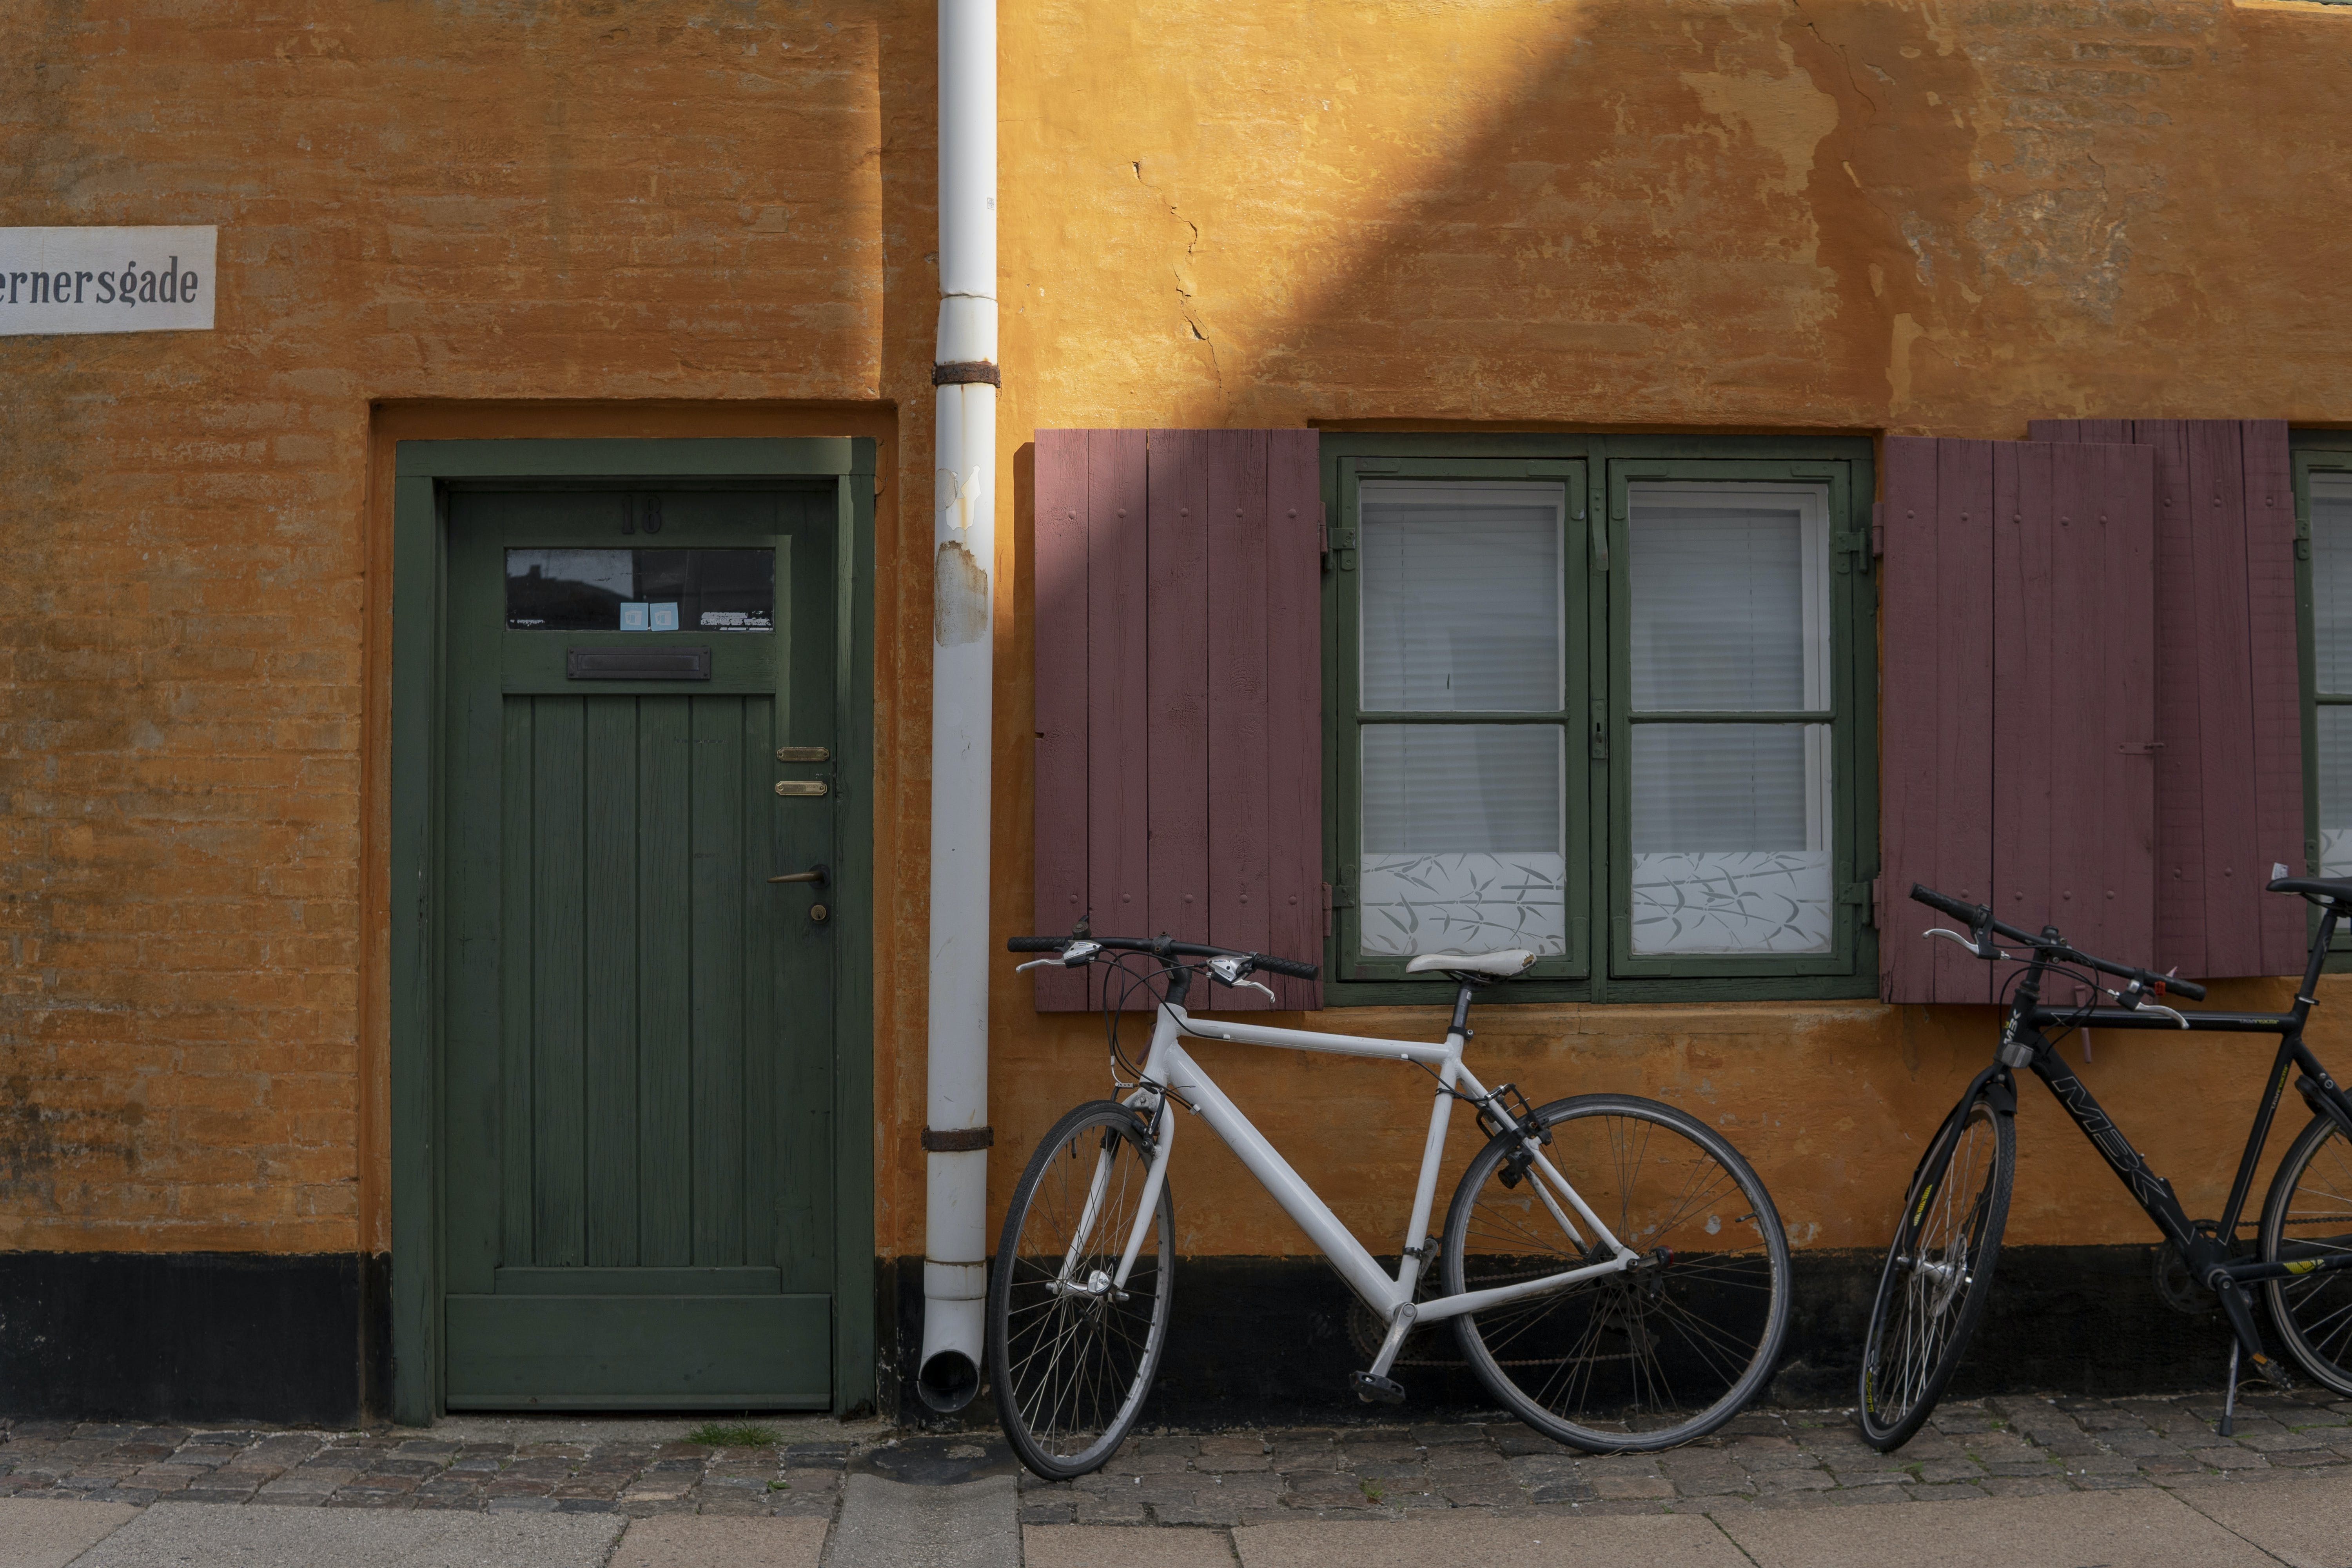 Bicycles Parked by Building